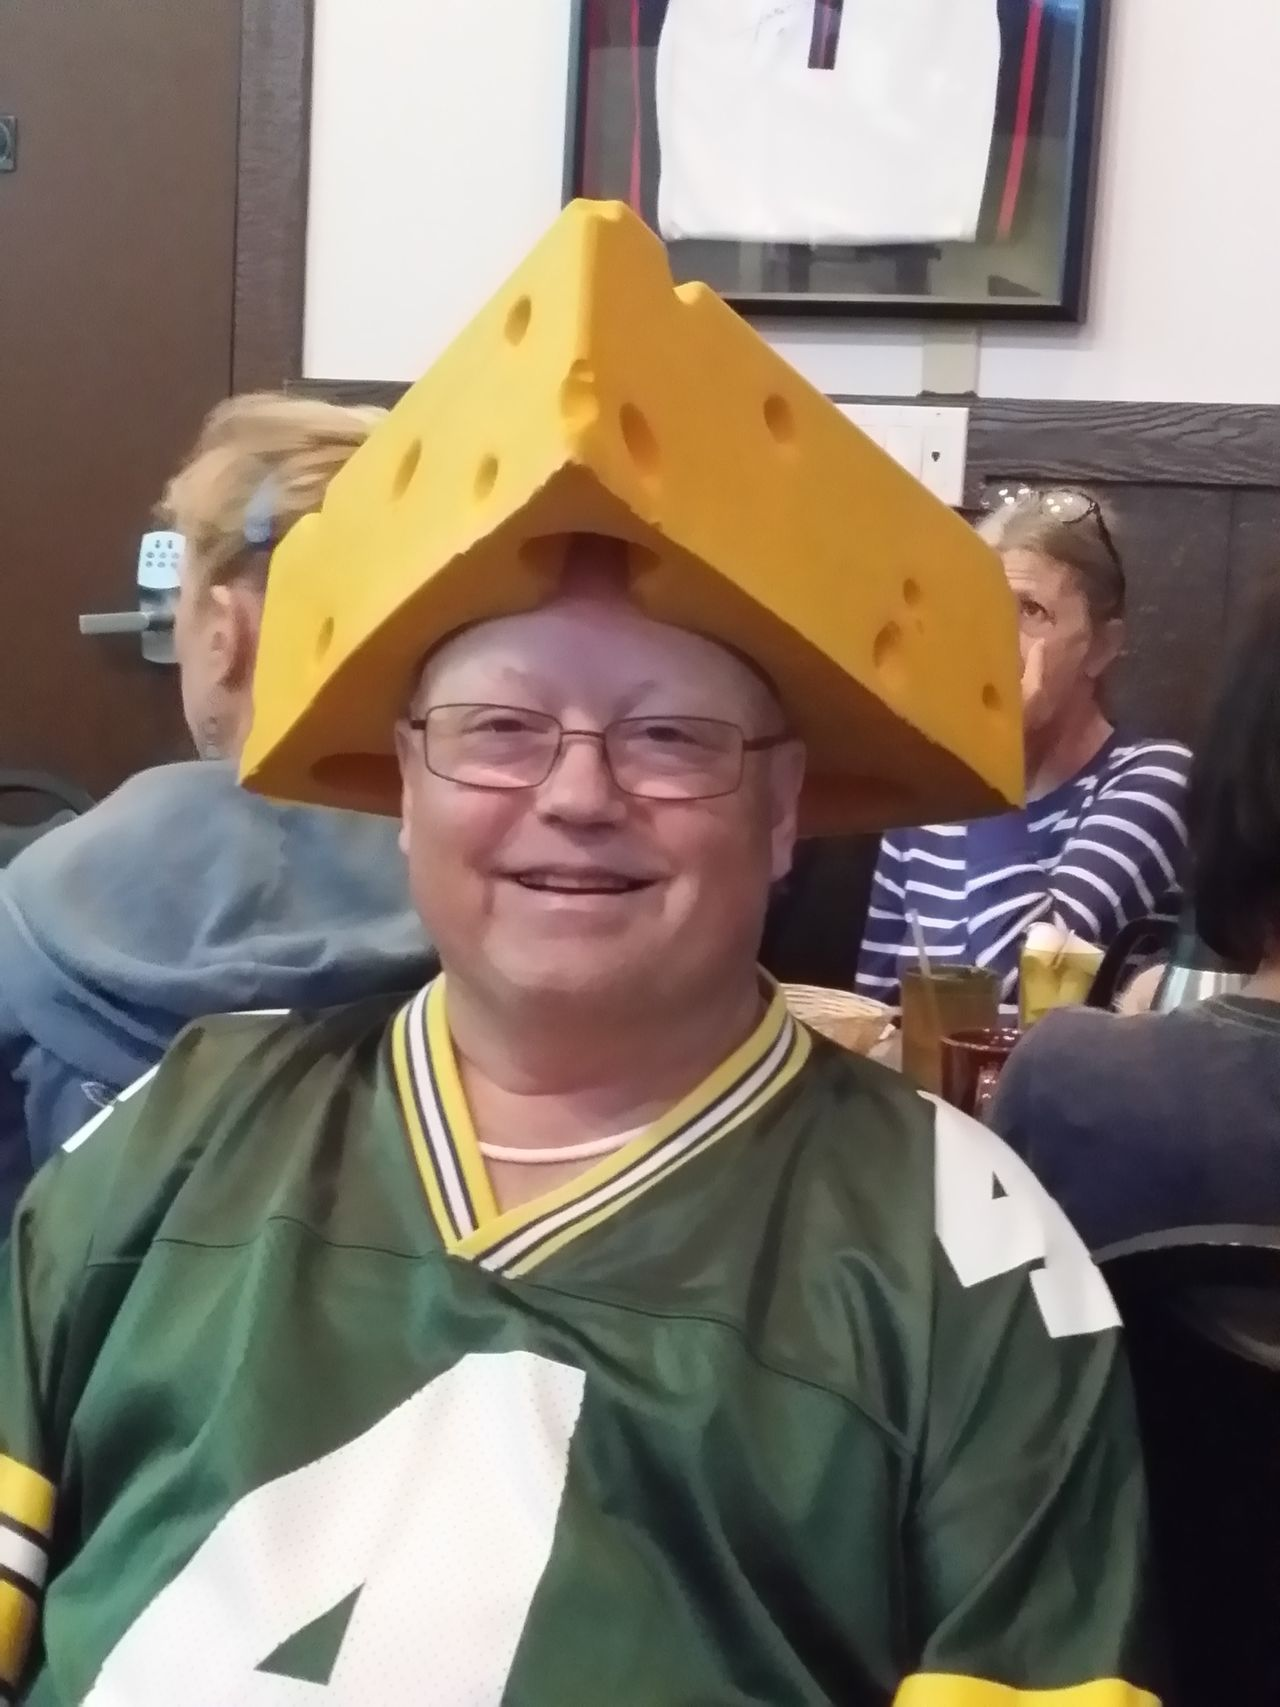 Hanging Out Football Football Fans Totalcheesehead CheeseHeadNation GreenbayPackers Greenbay Packers Say Cheese!